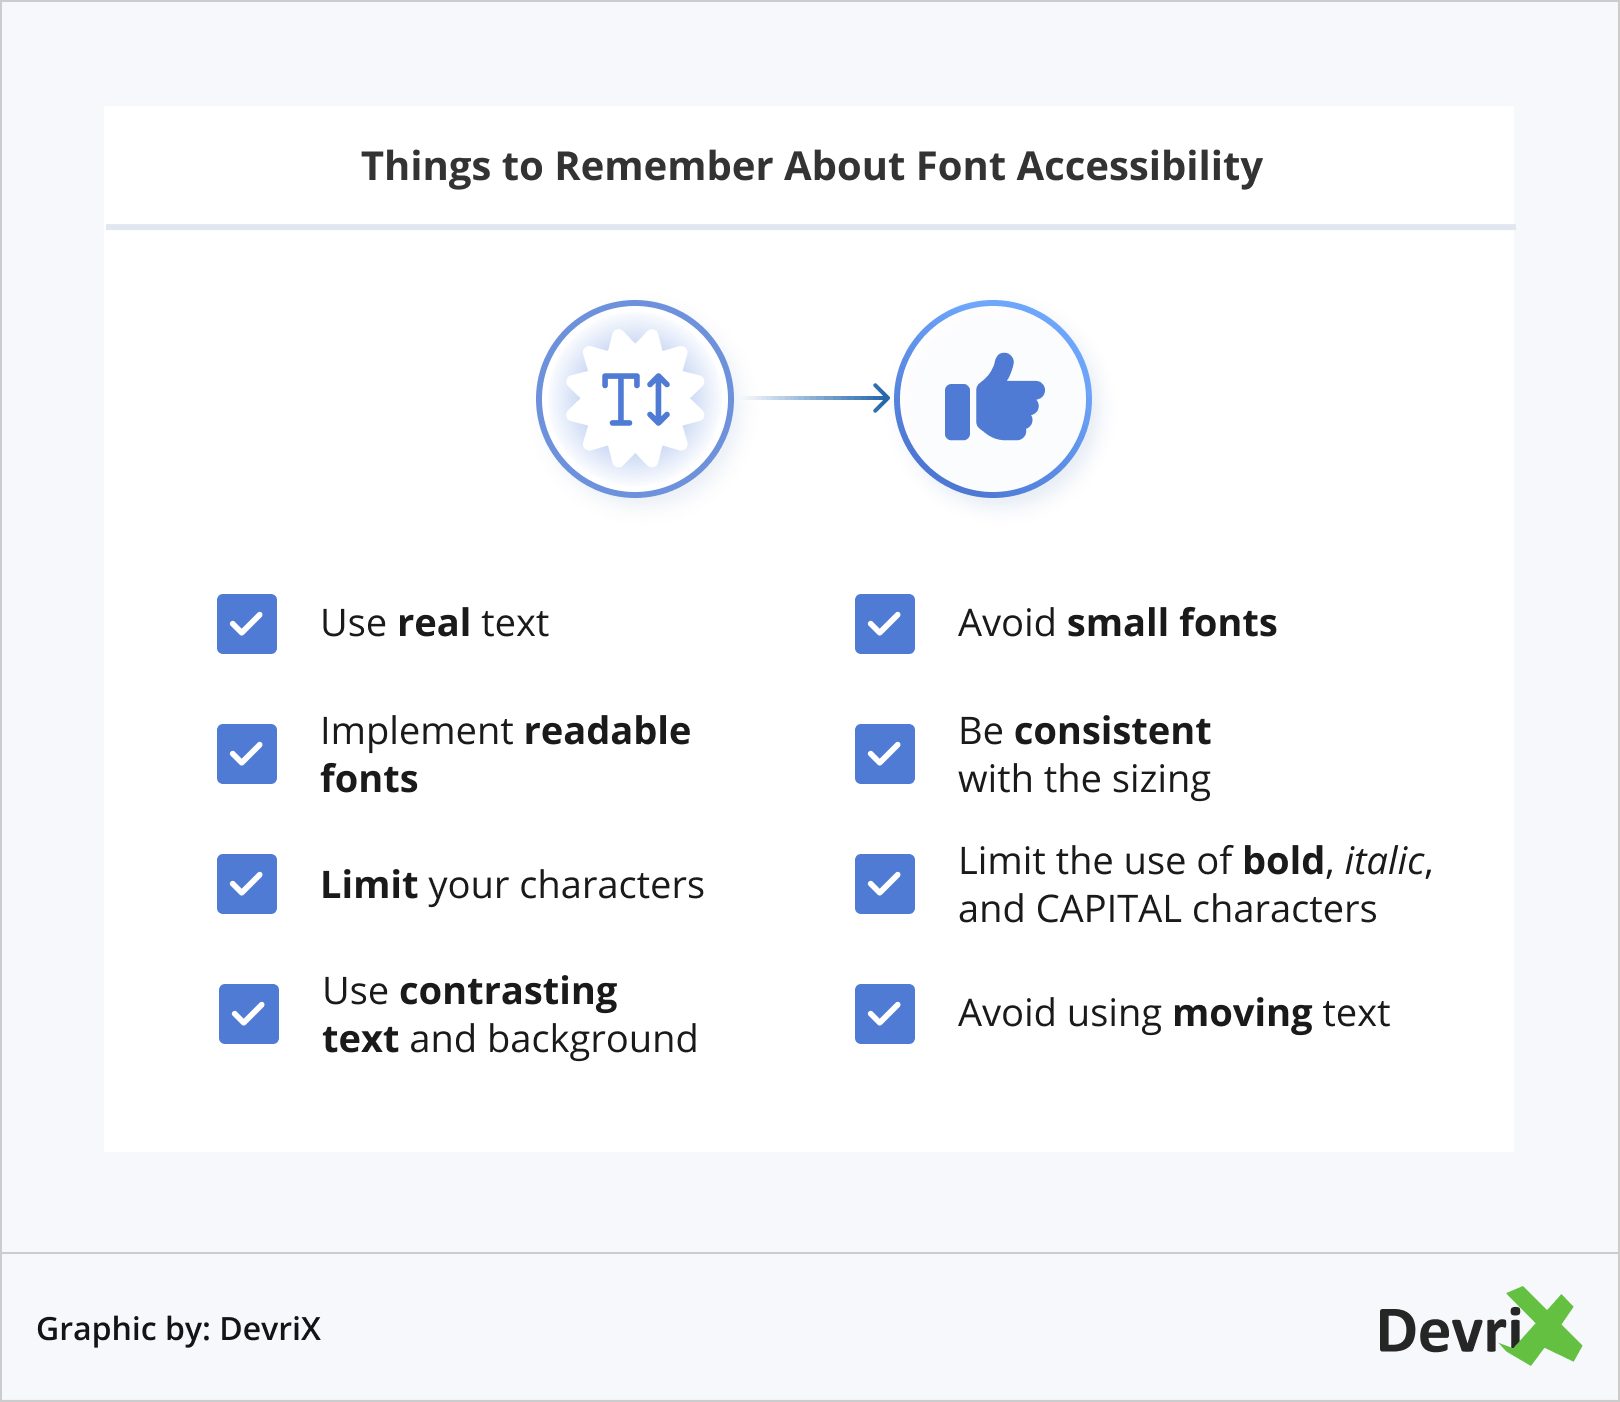 Things to Remember About Font Accessibility